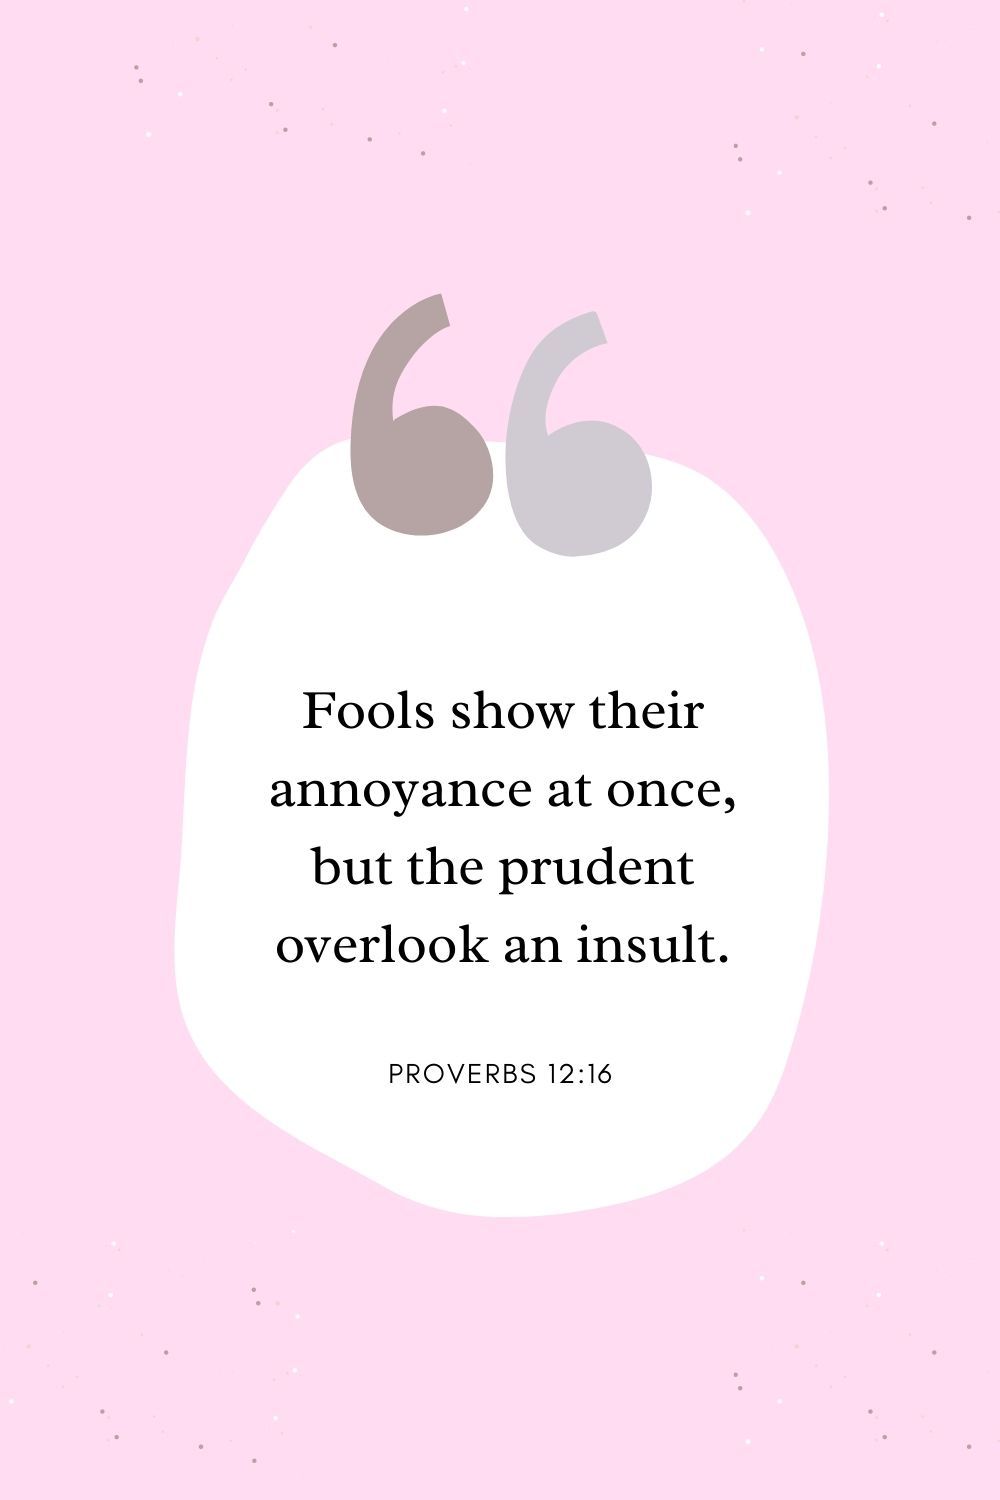 Fools show their annoyance at once, but the prudent overlook an insult. Proverbs 12:16